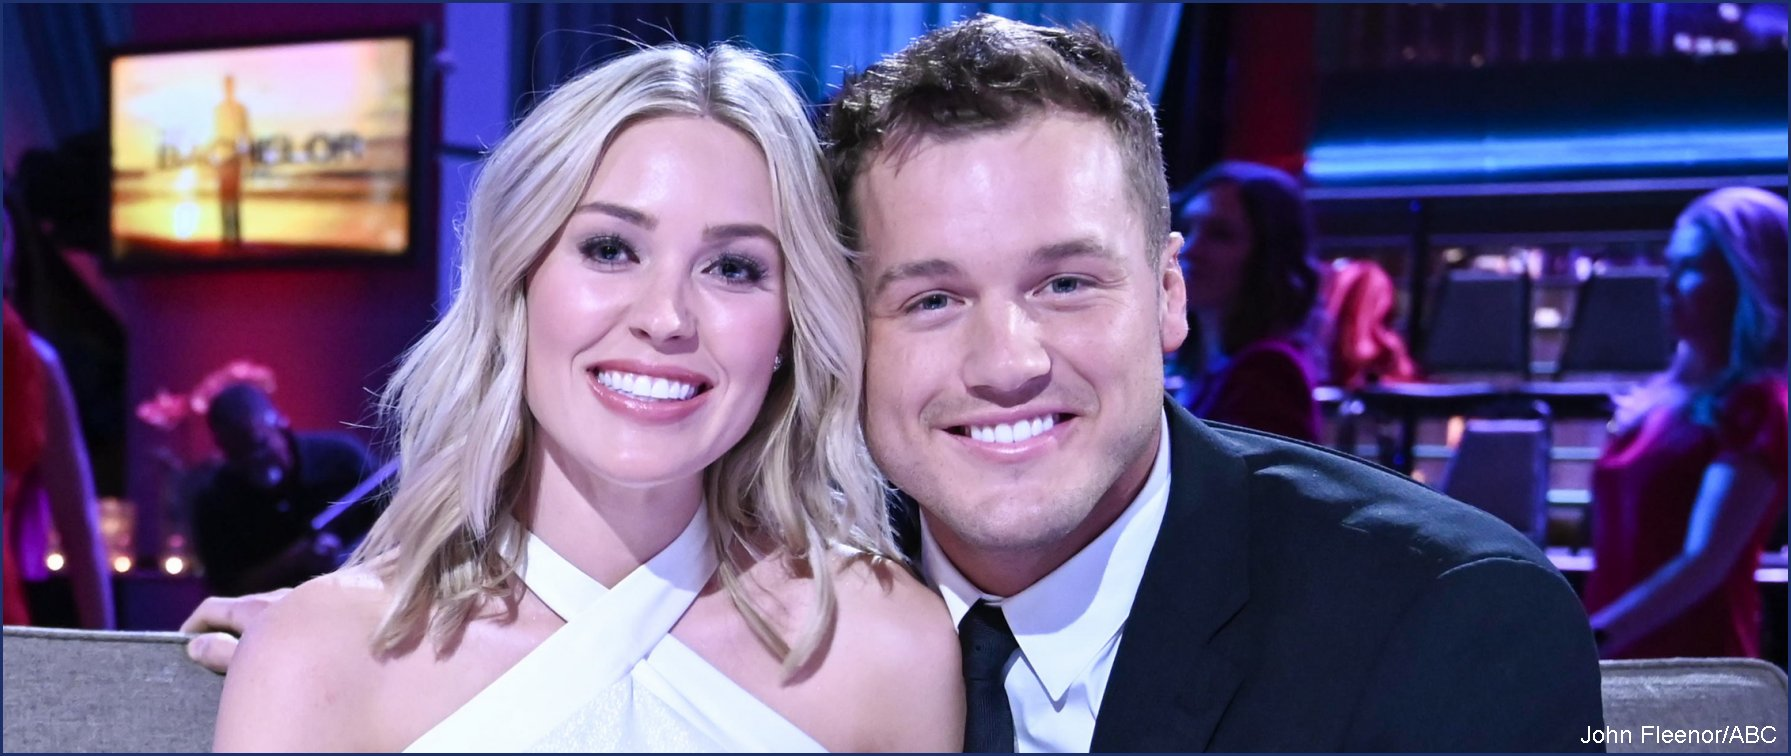 """cassie-randolph-reportedly-attempted-to-end-things-with-colton-underwood-a-few-times-before-actual-breakup"""